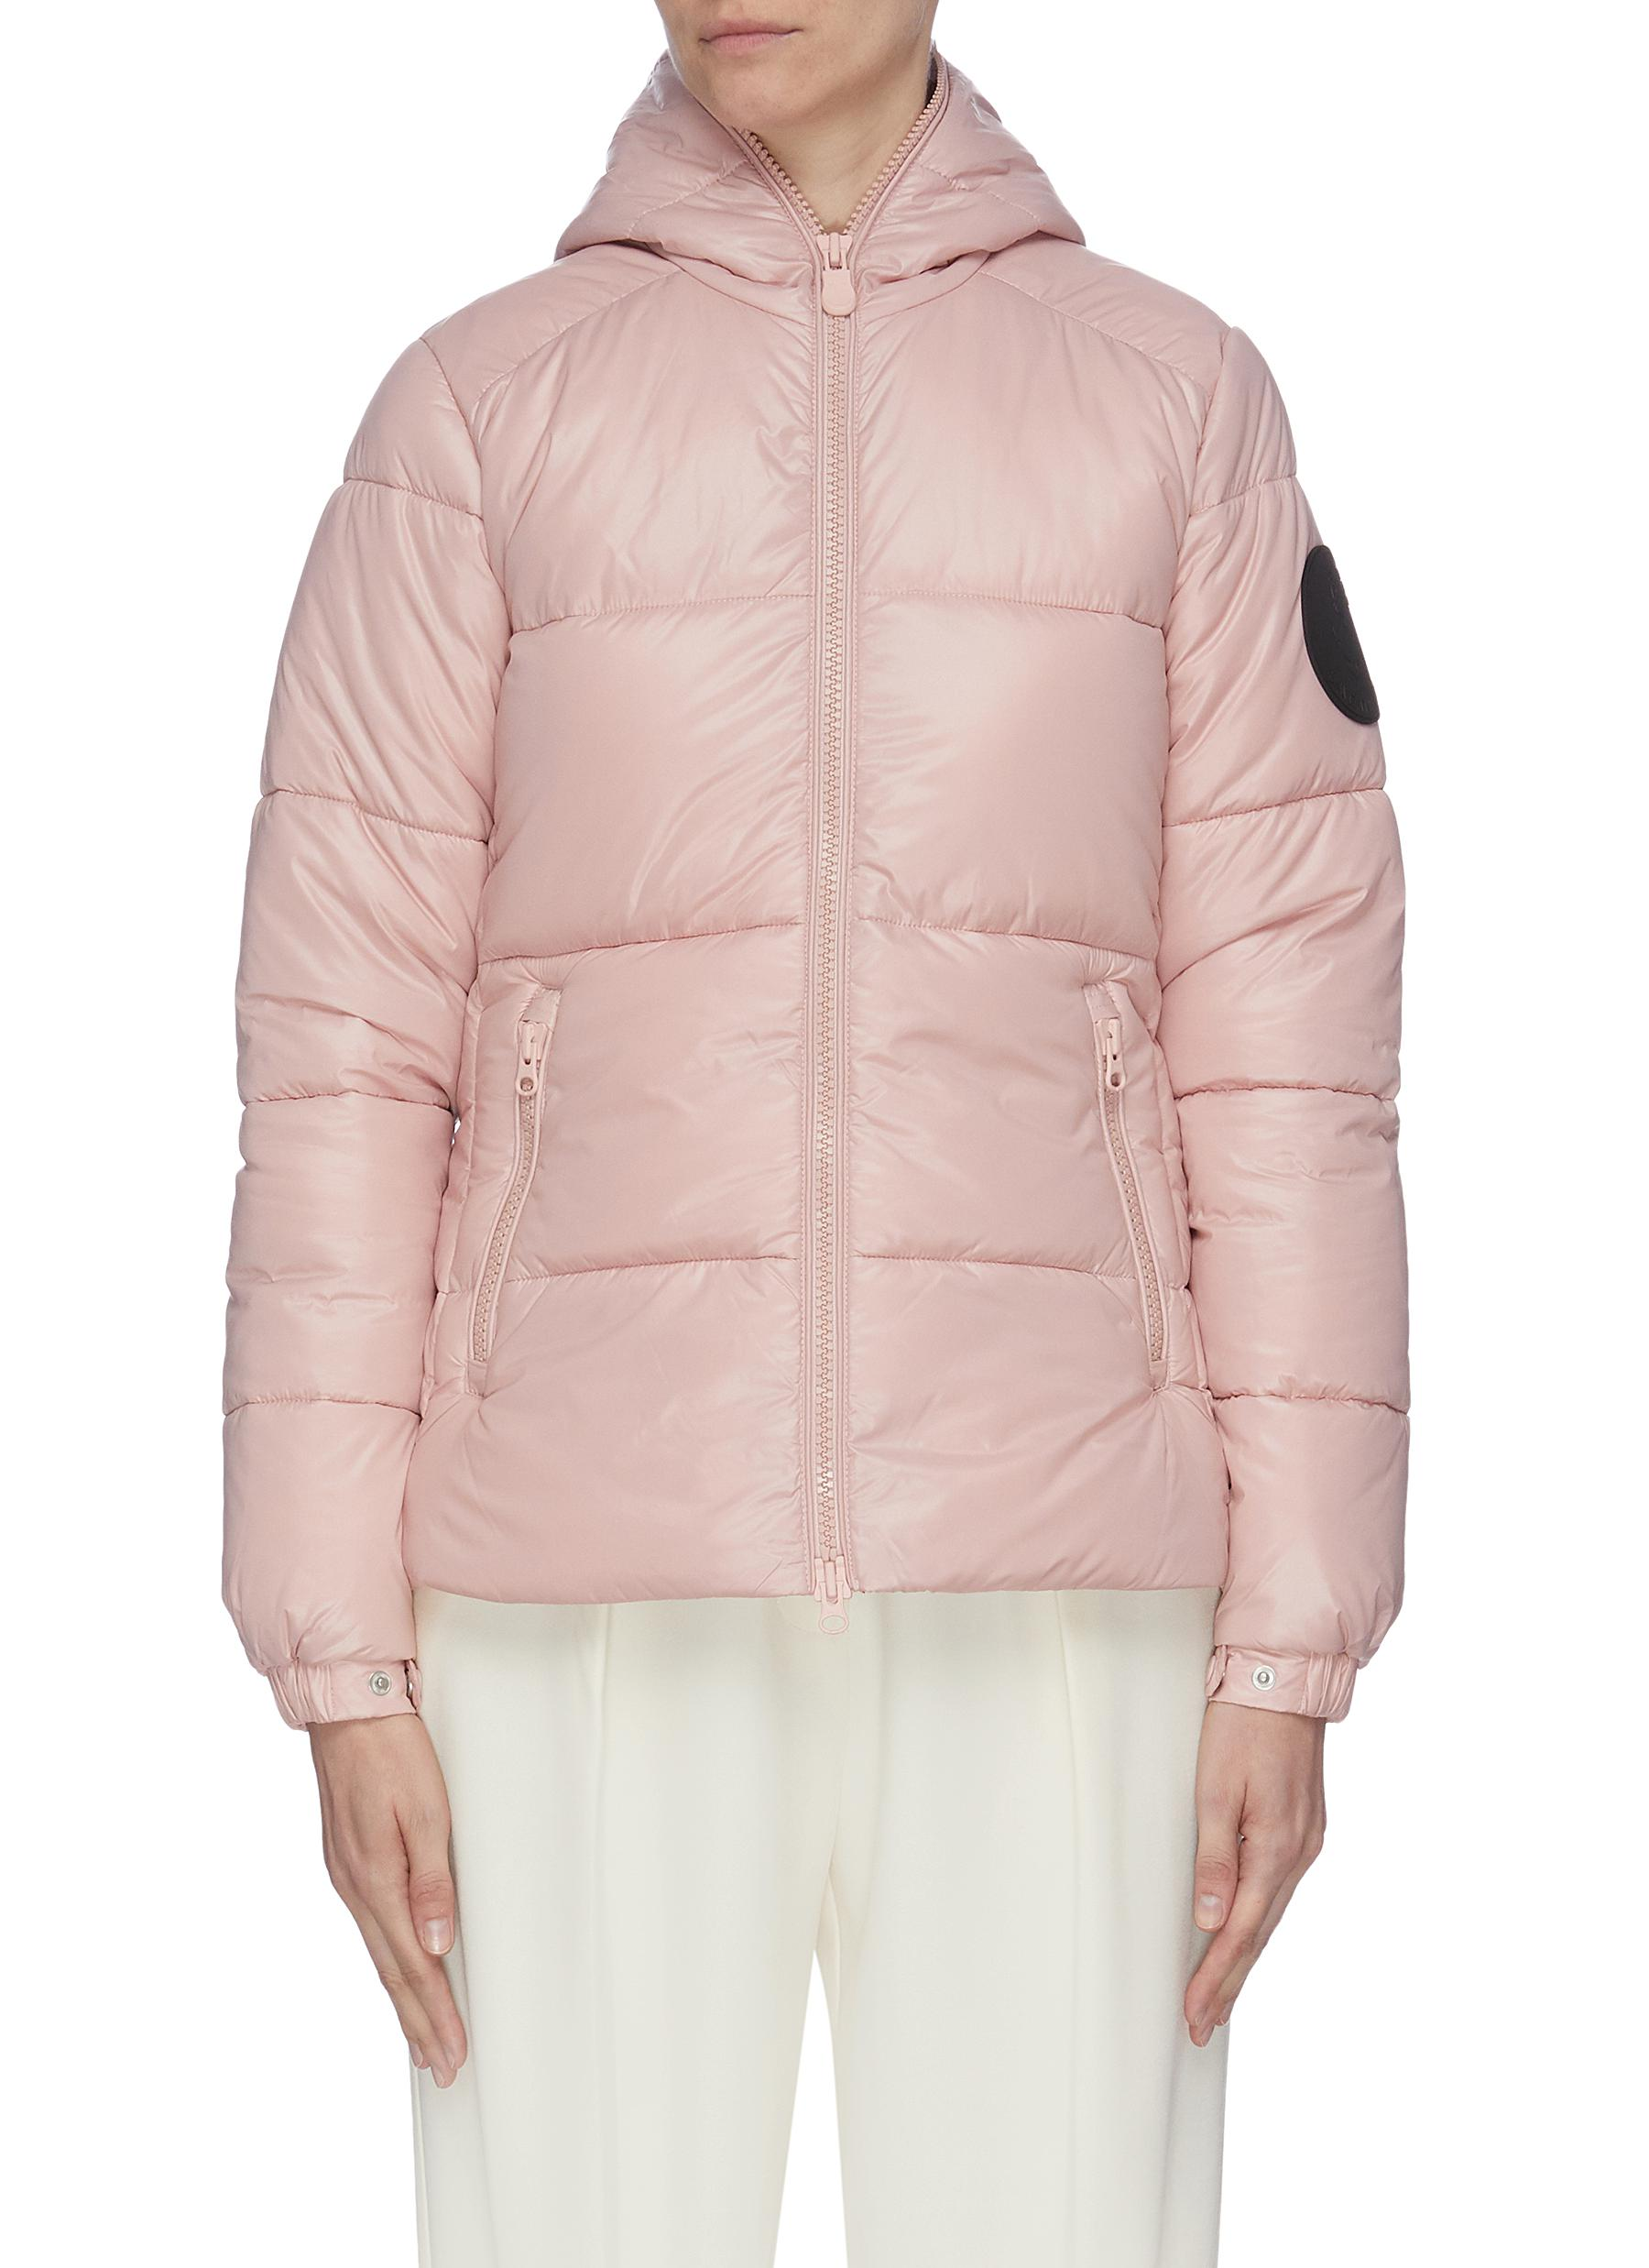 Hooded puffer jacket by Save The Duck